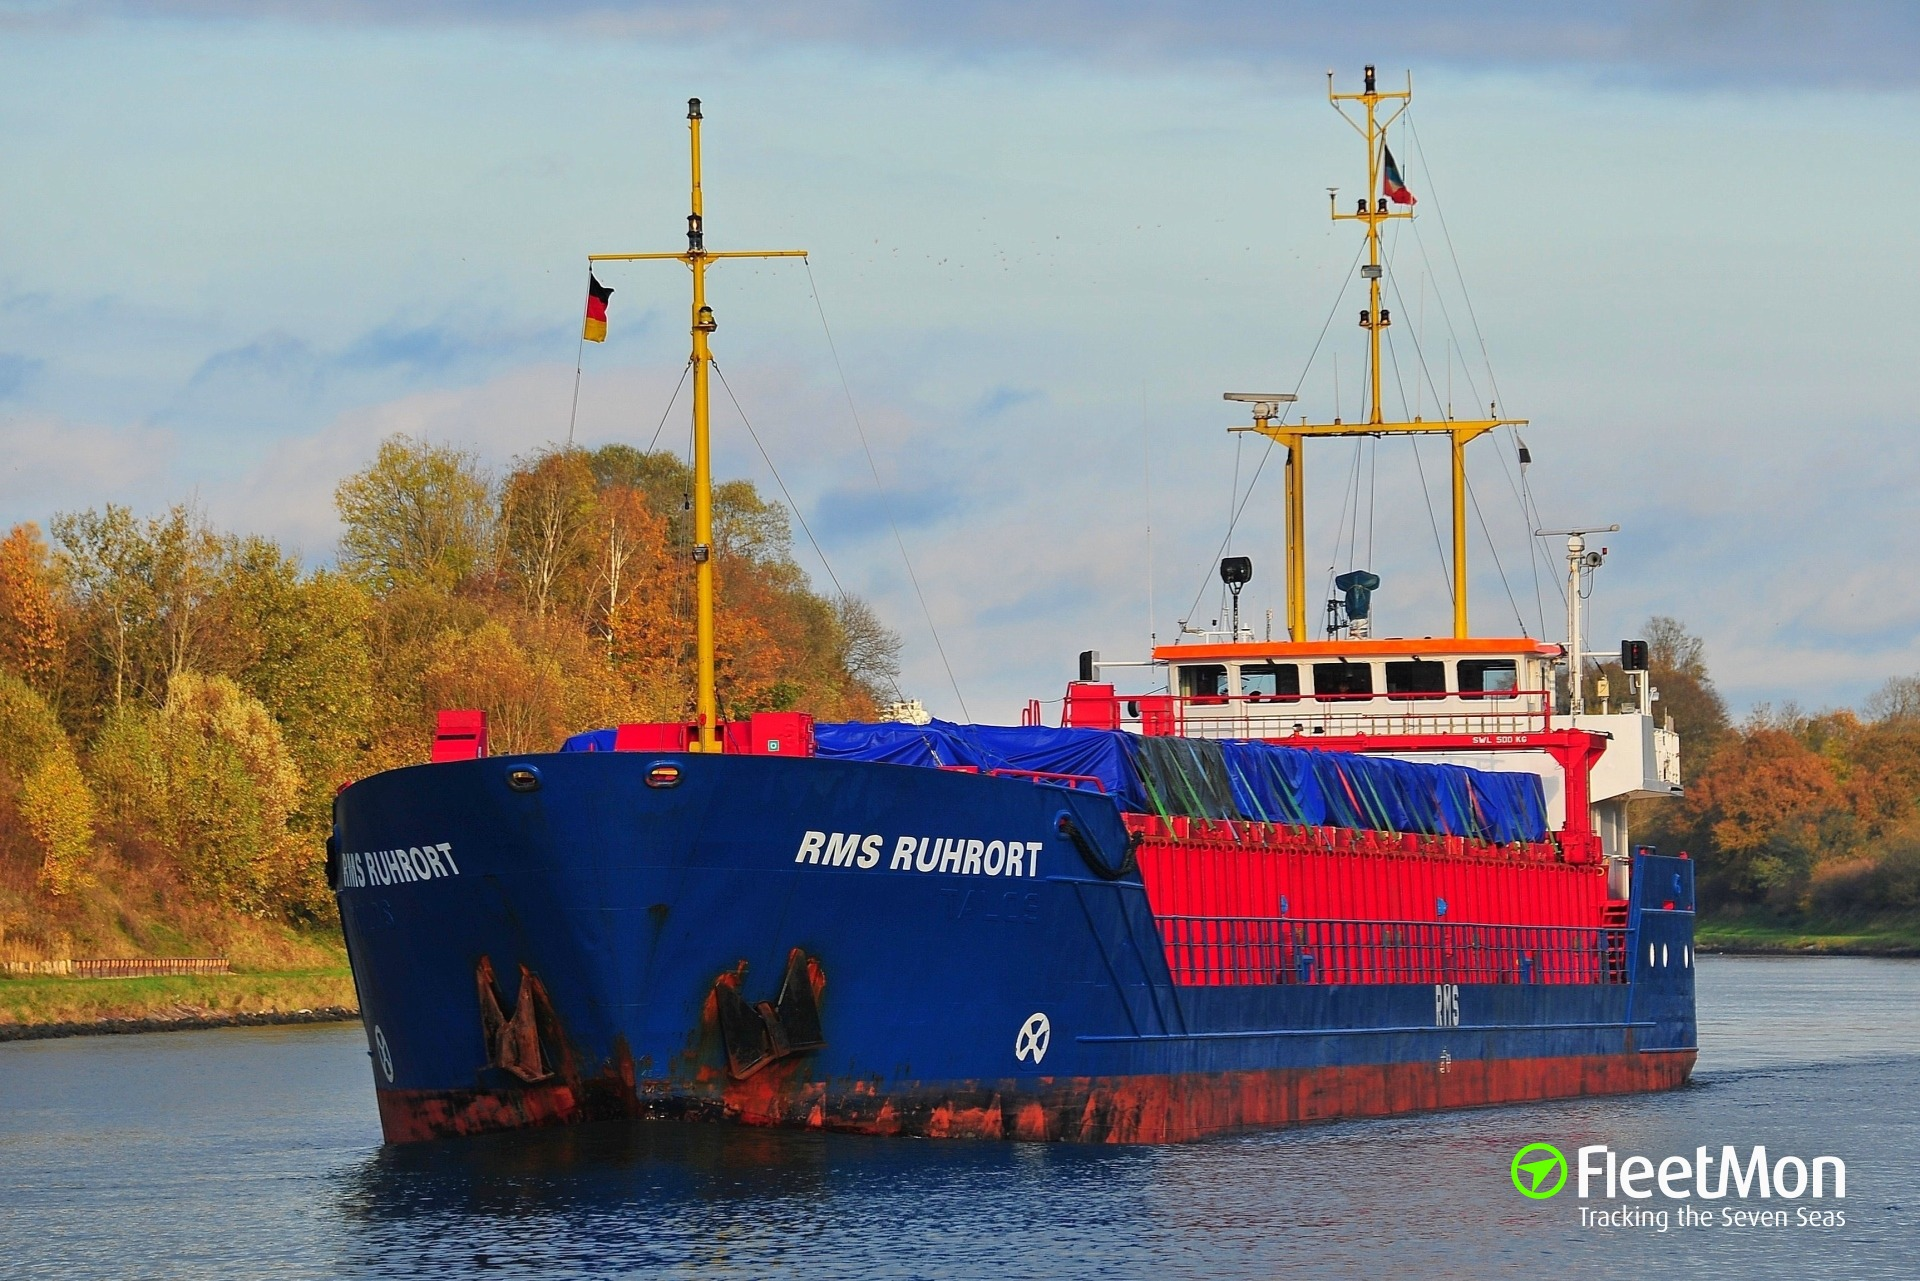 General cargo vessel ran onto embankment in Kiel Canal